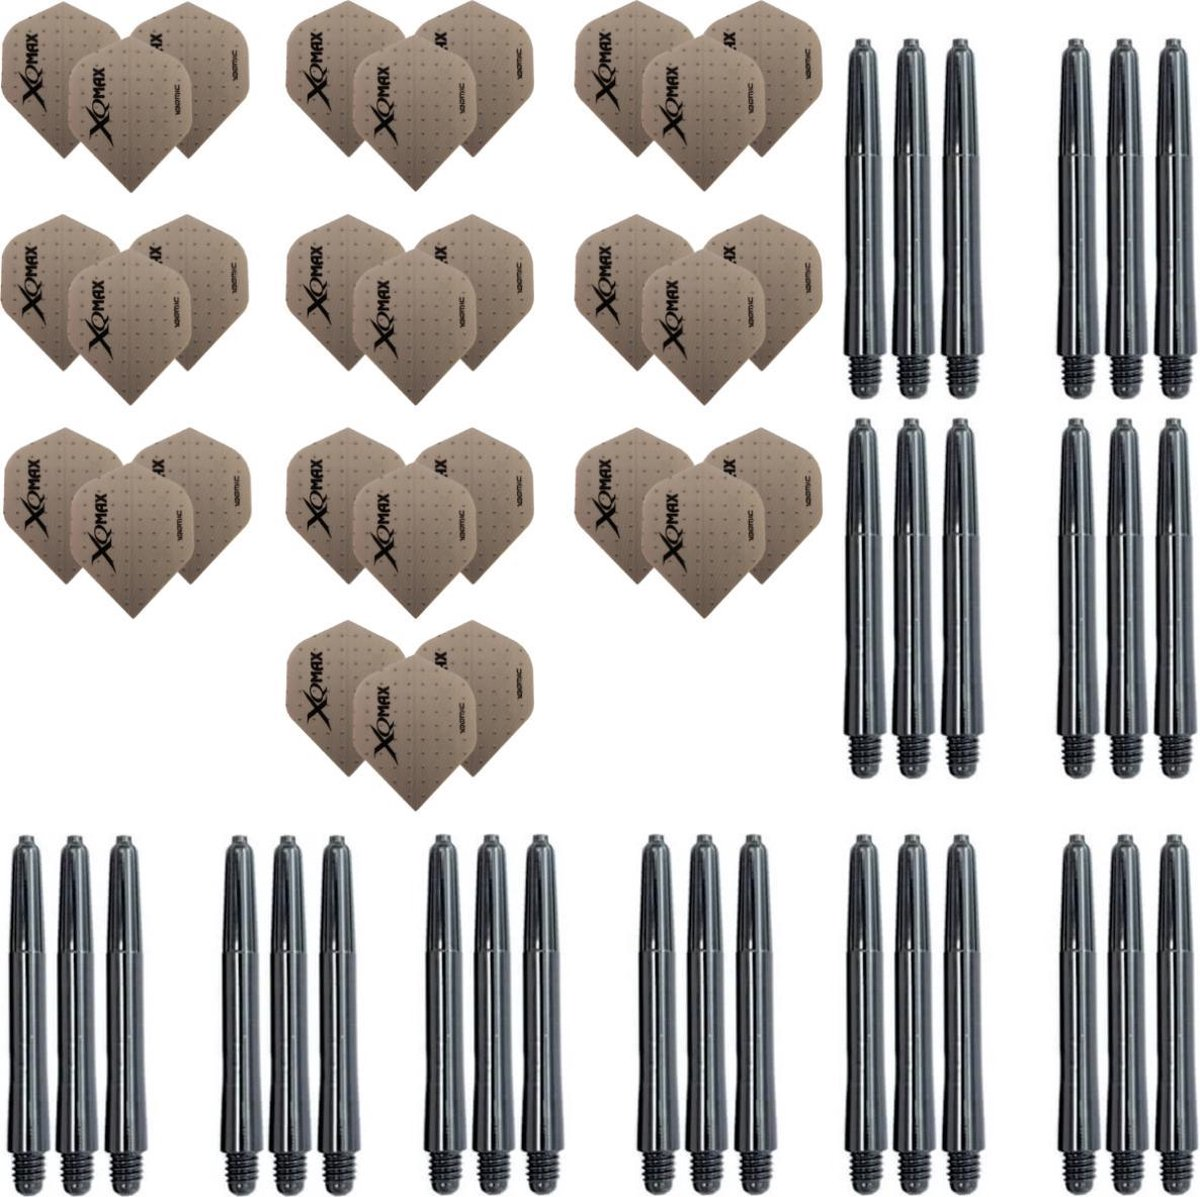 Dragon darts 10 sets (30 stuks) XQMax - darts flights - grey dot - plus 10 sets (30 stuks) medium - darts shafts